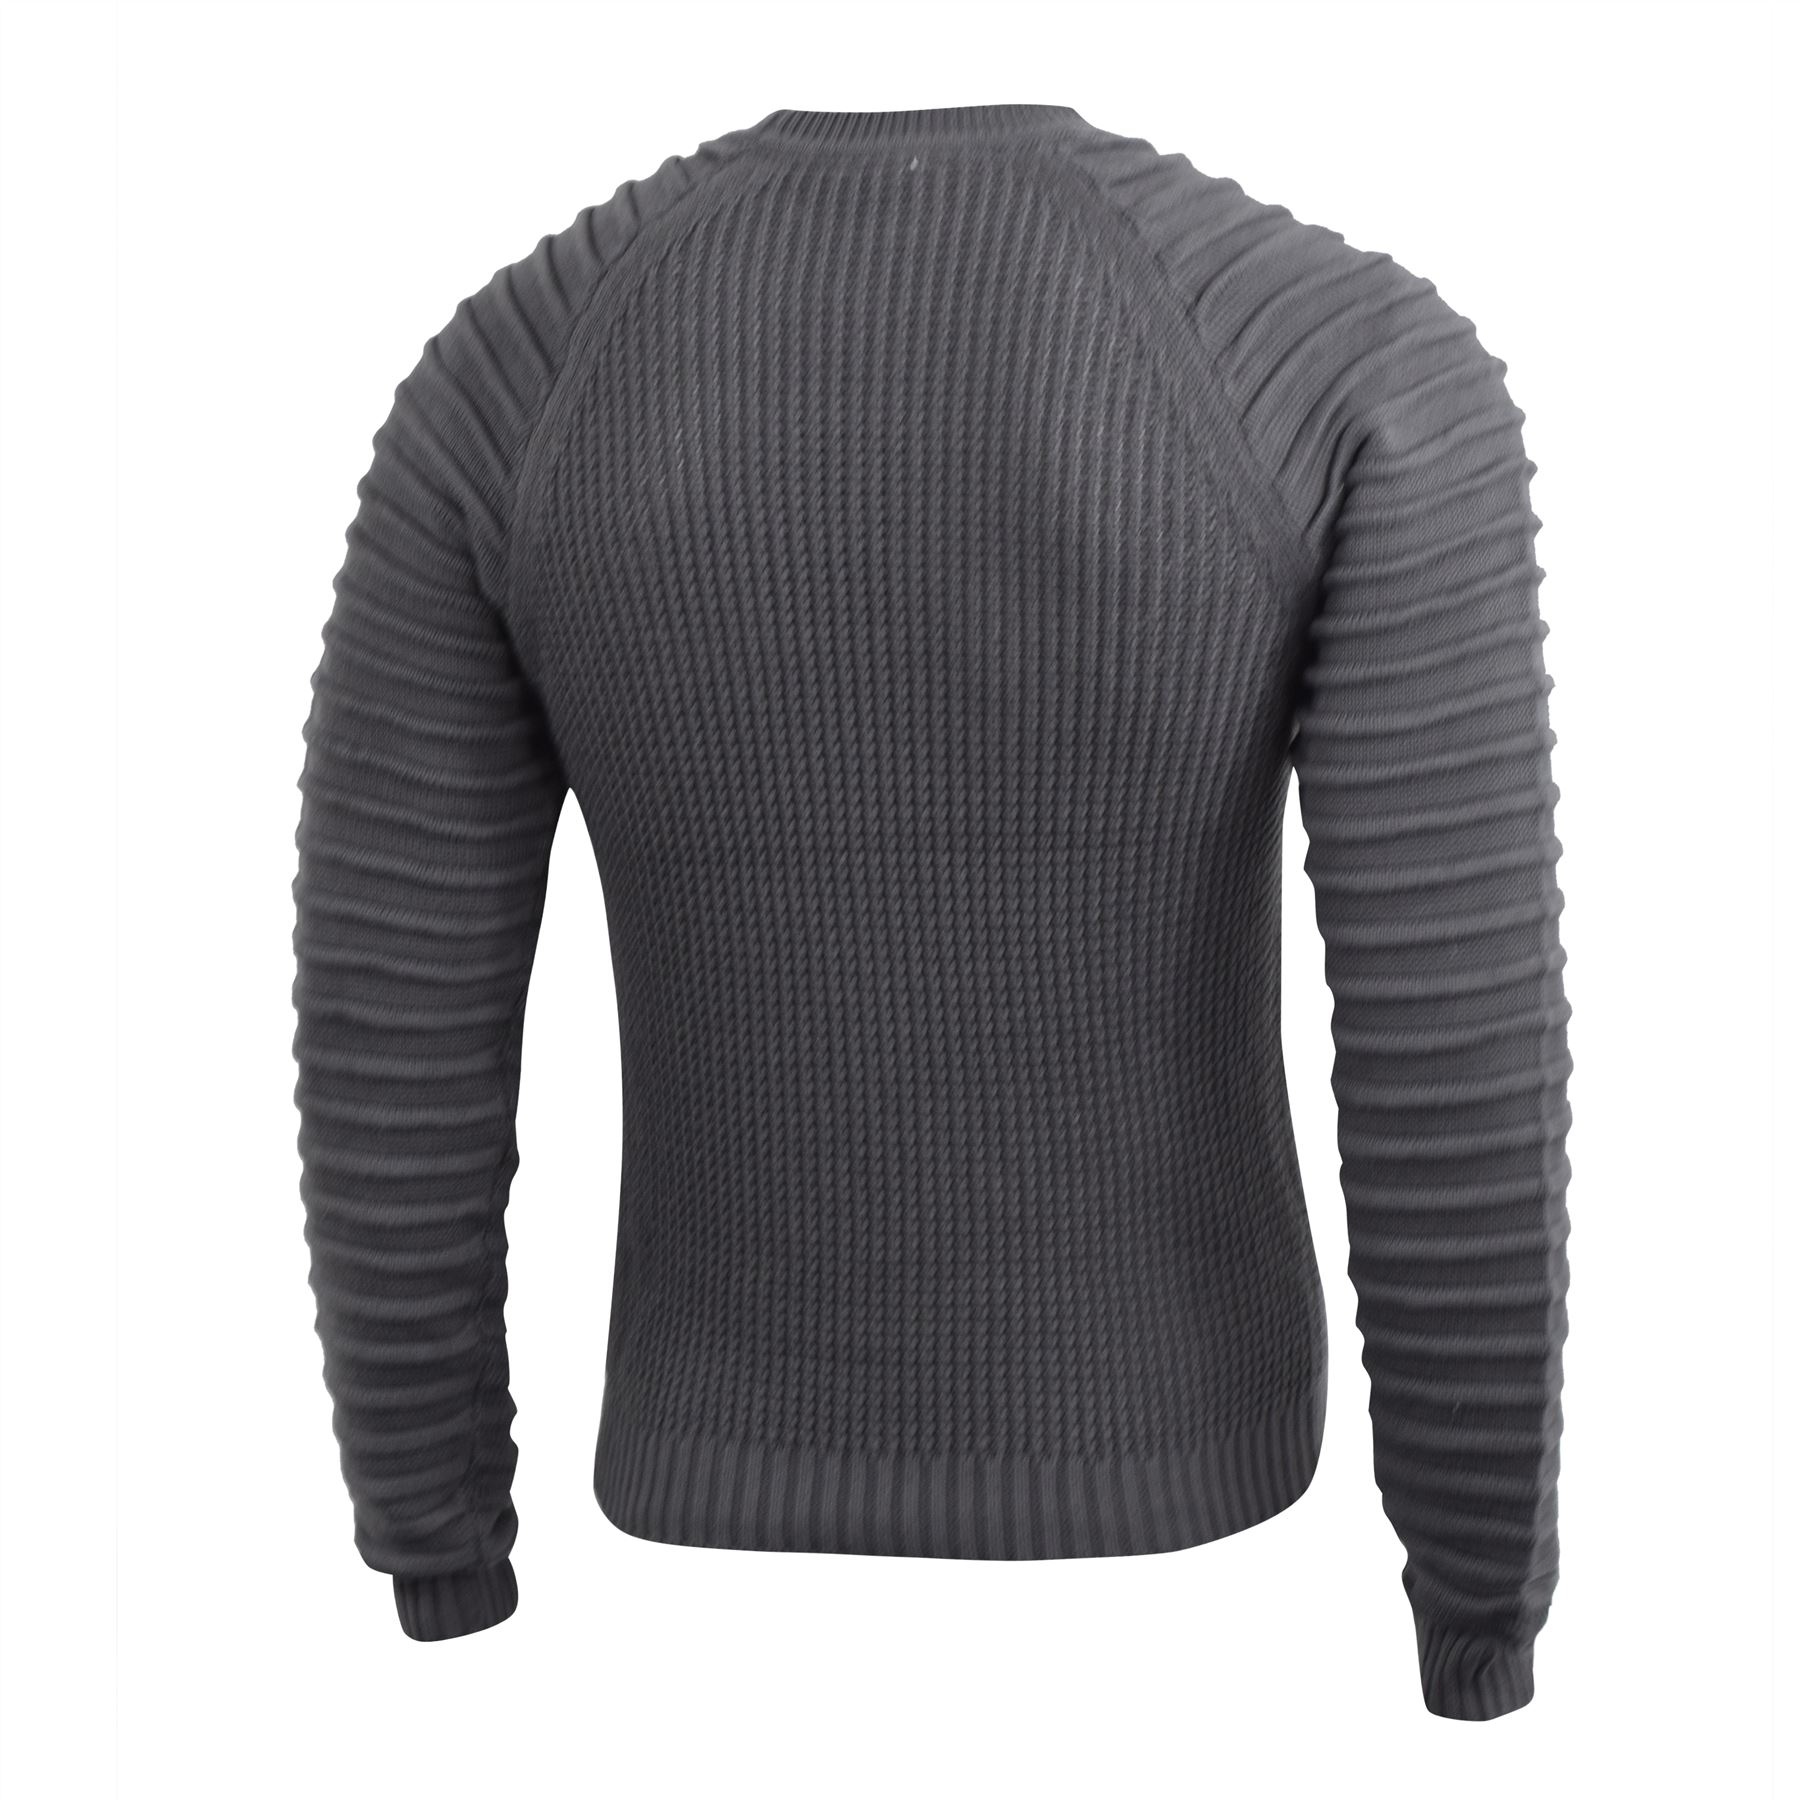 Mens-Knitwear-Crosshatch-Sweater-Top-Pullover-Knitted-Jumper thumbnail 7